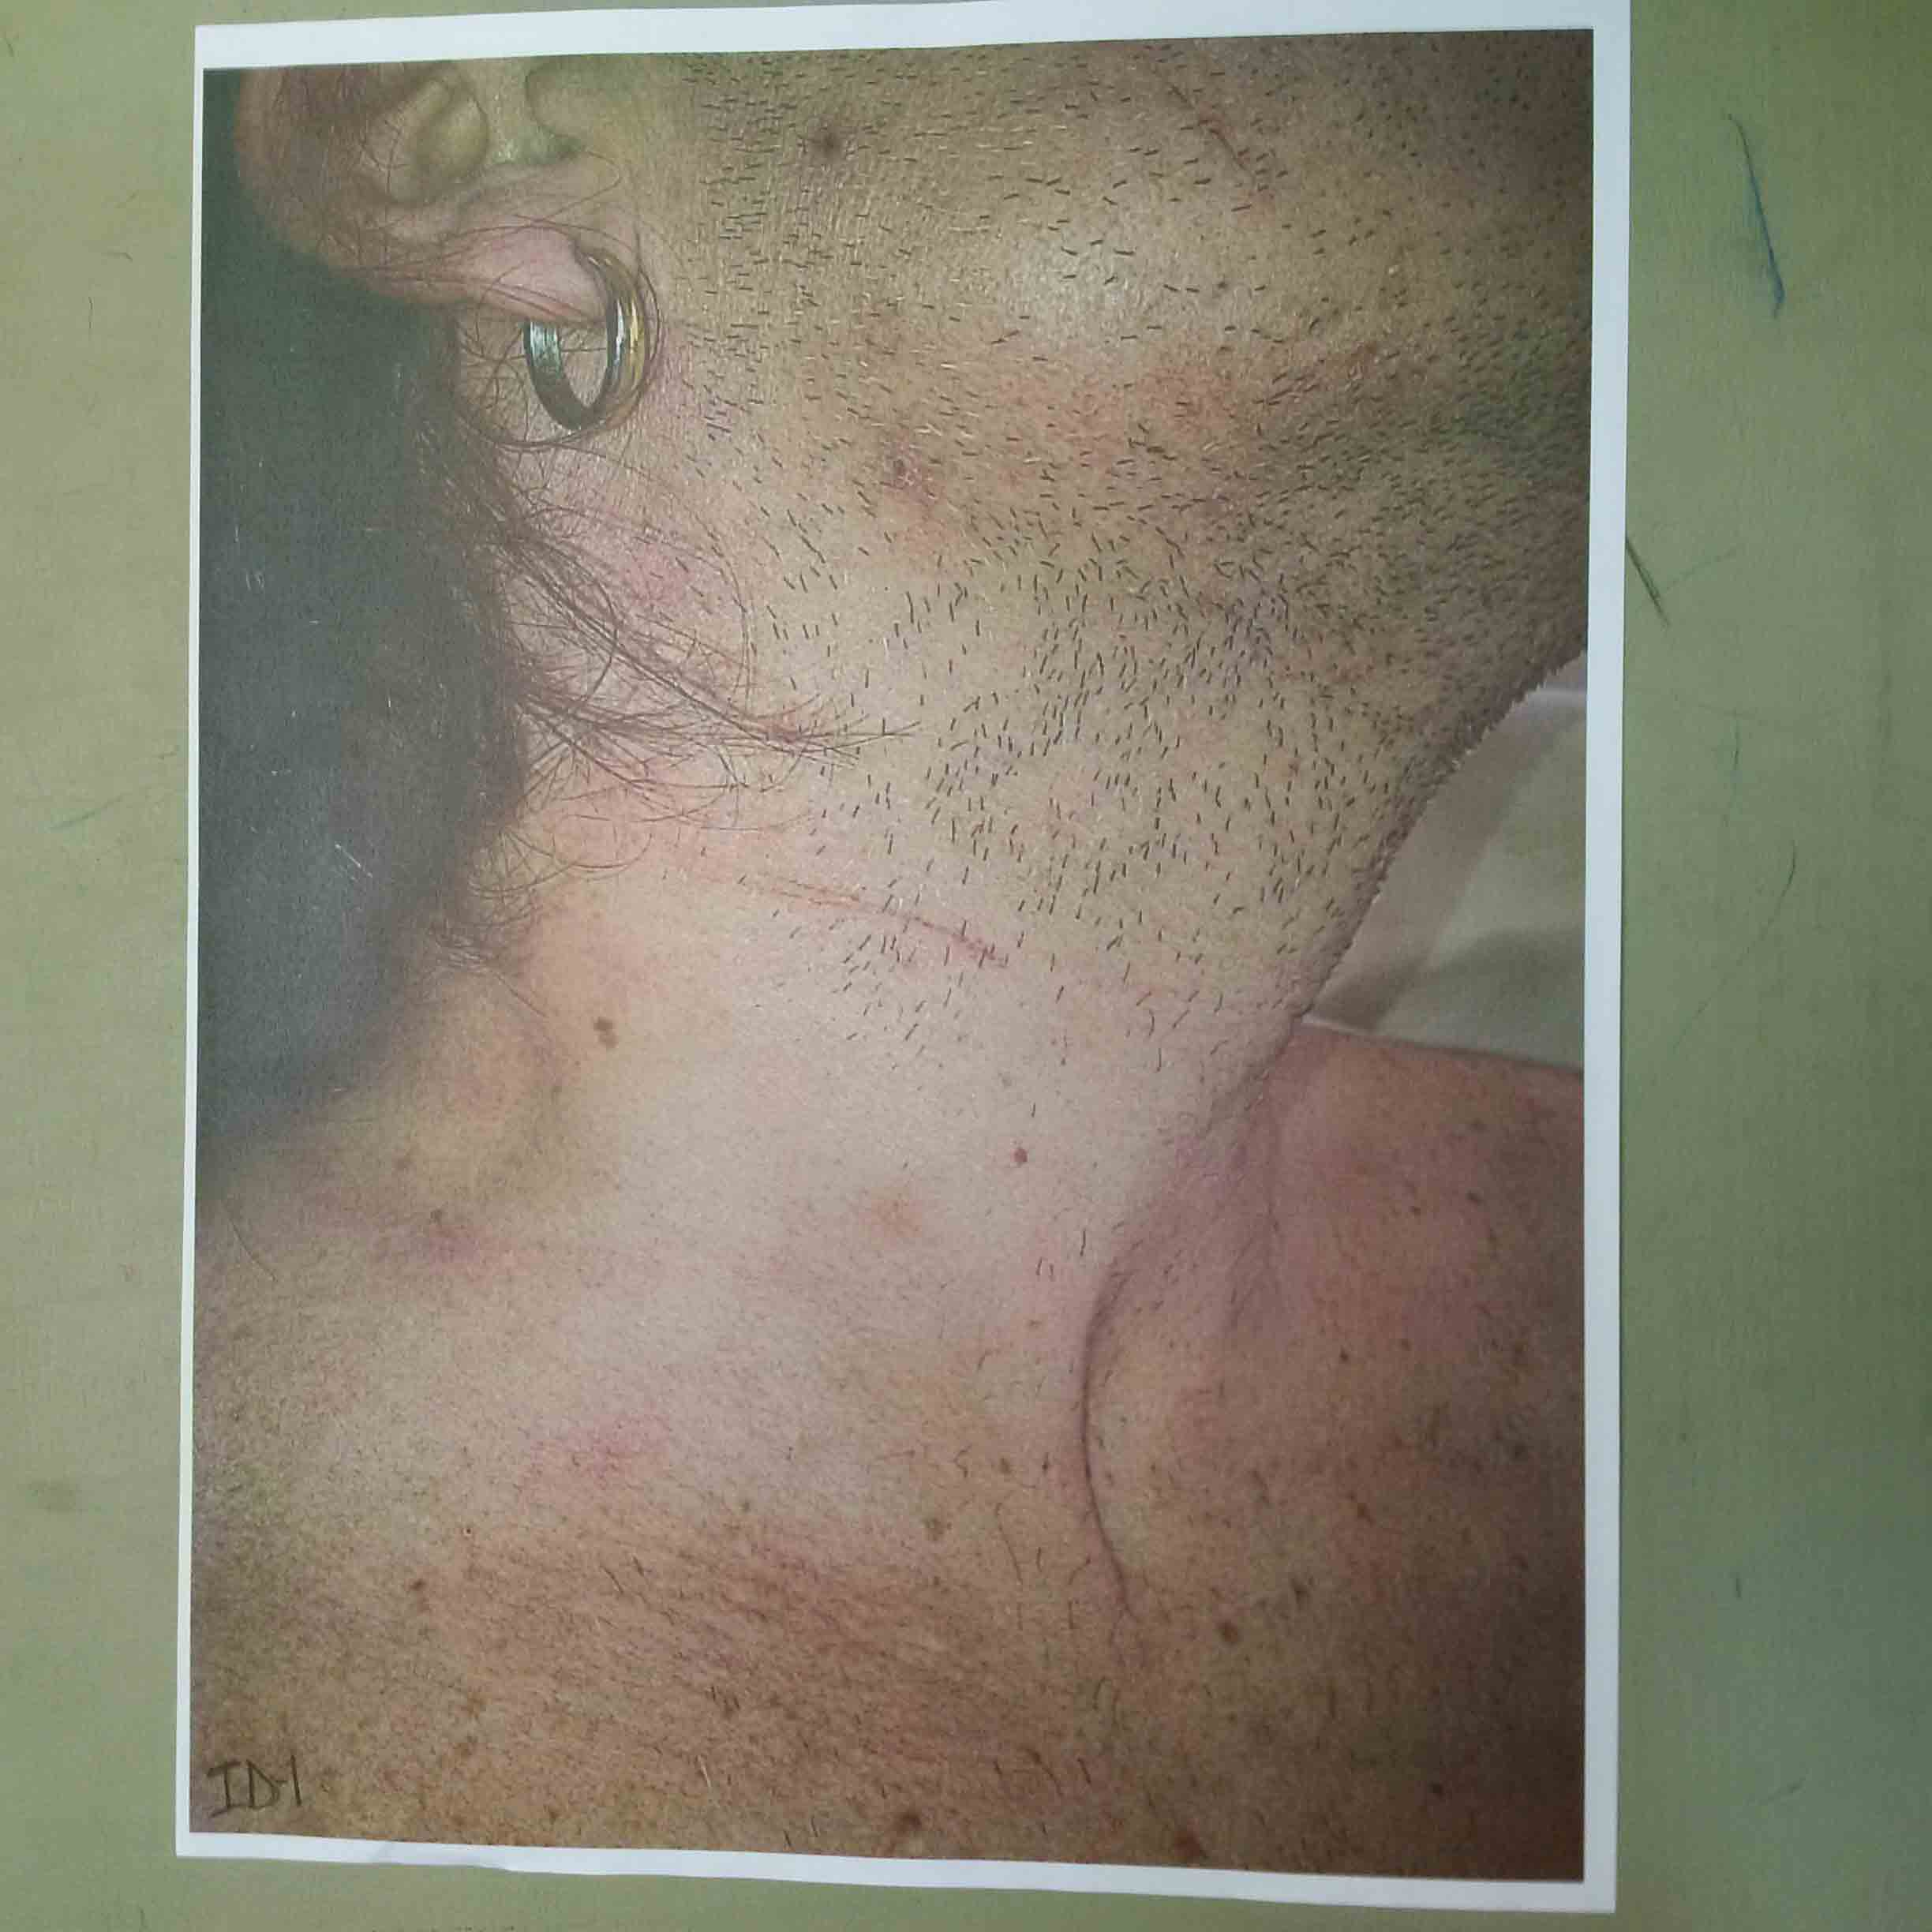 An exhibit of a photo of Patrick Brazeau's next and lower cheek submitted by the defence Thursday.